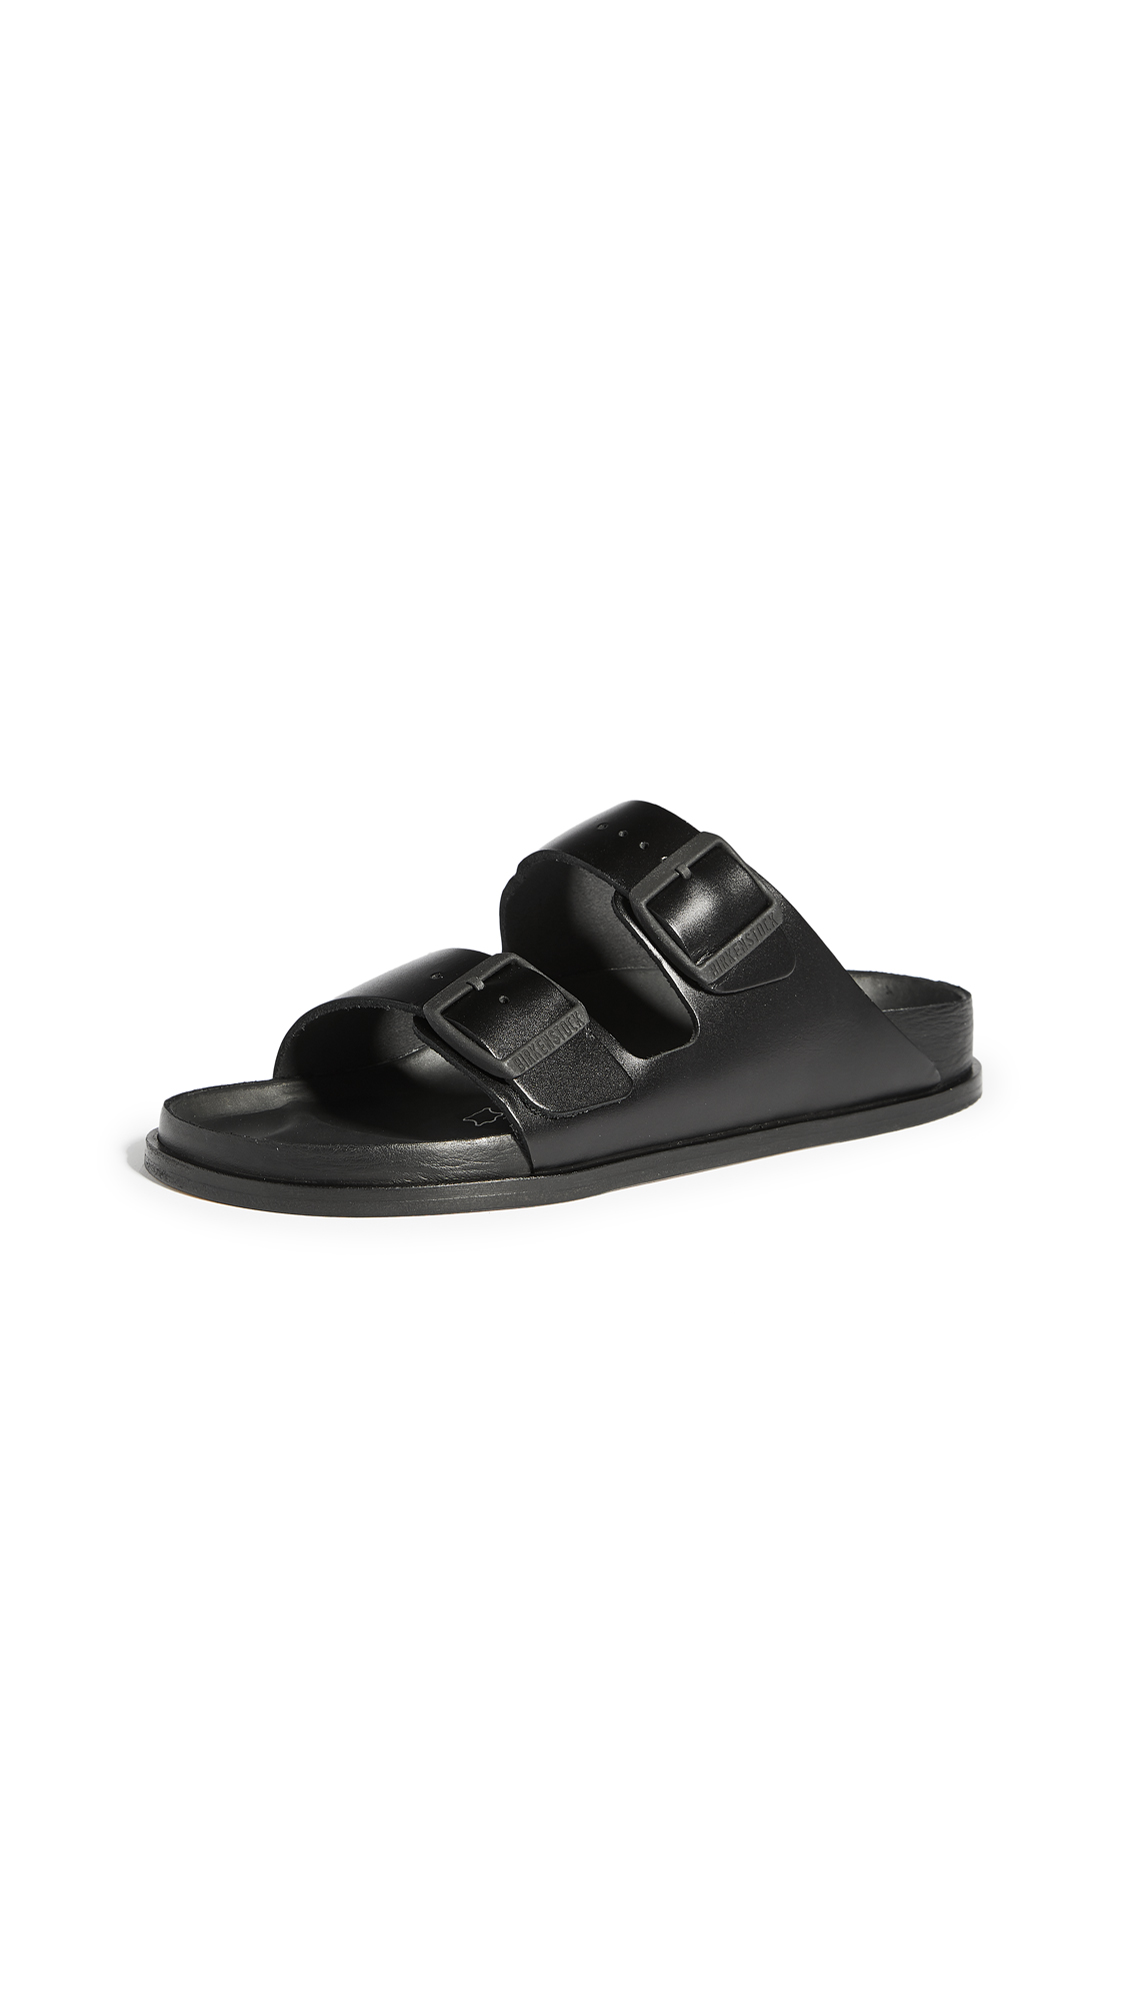 Birkenstock 1774 ARIZONA PREMIUM SANDALS - NARROW